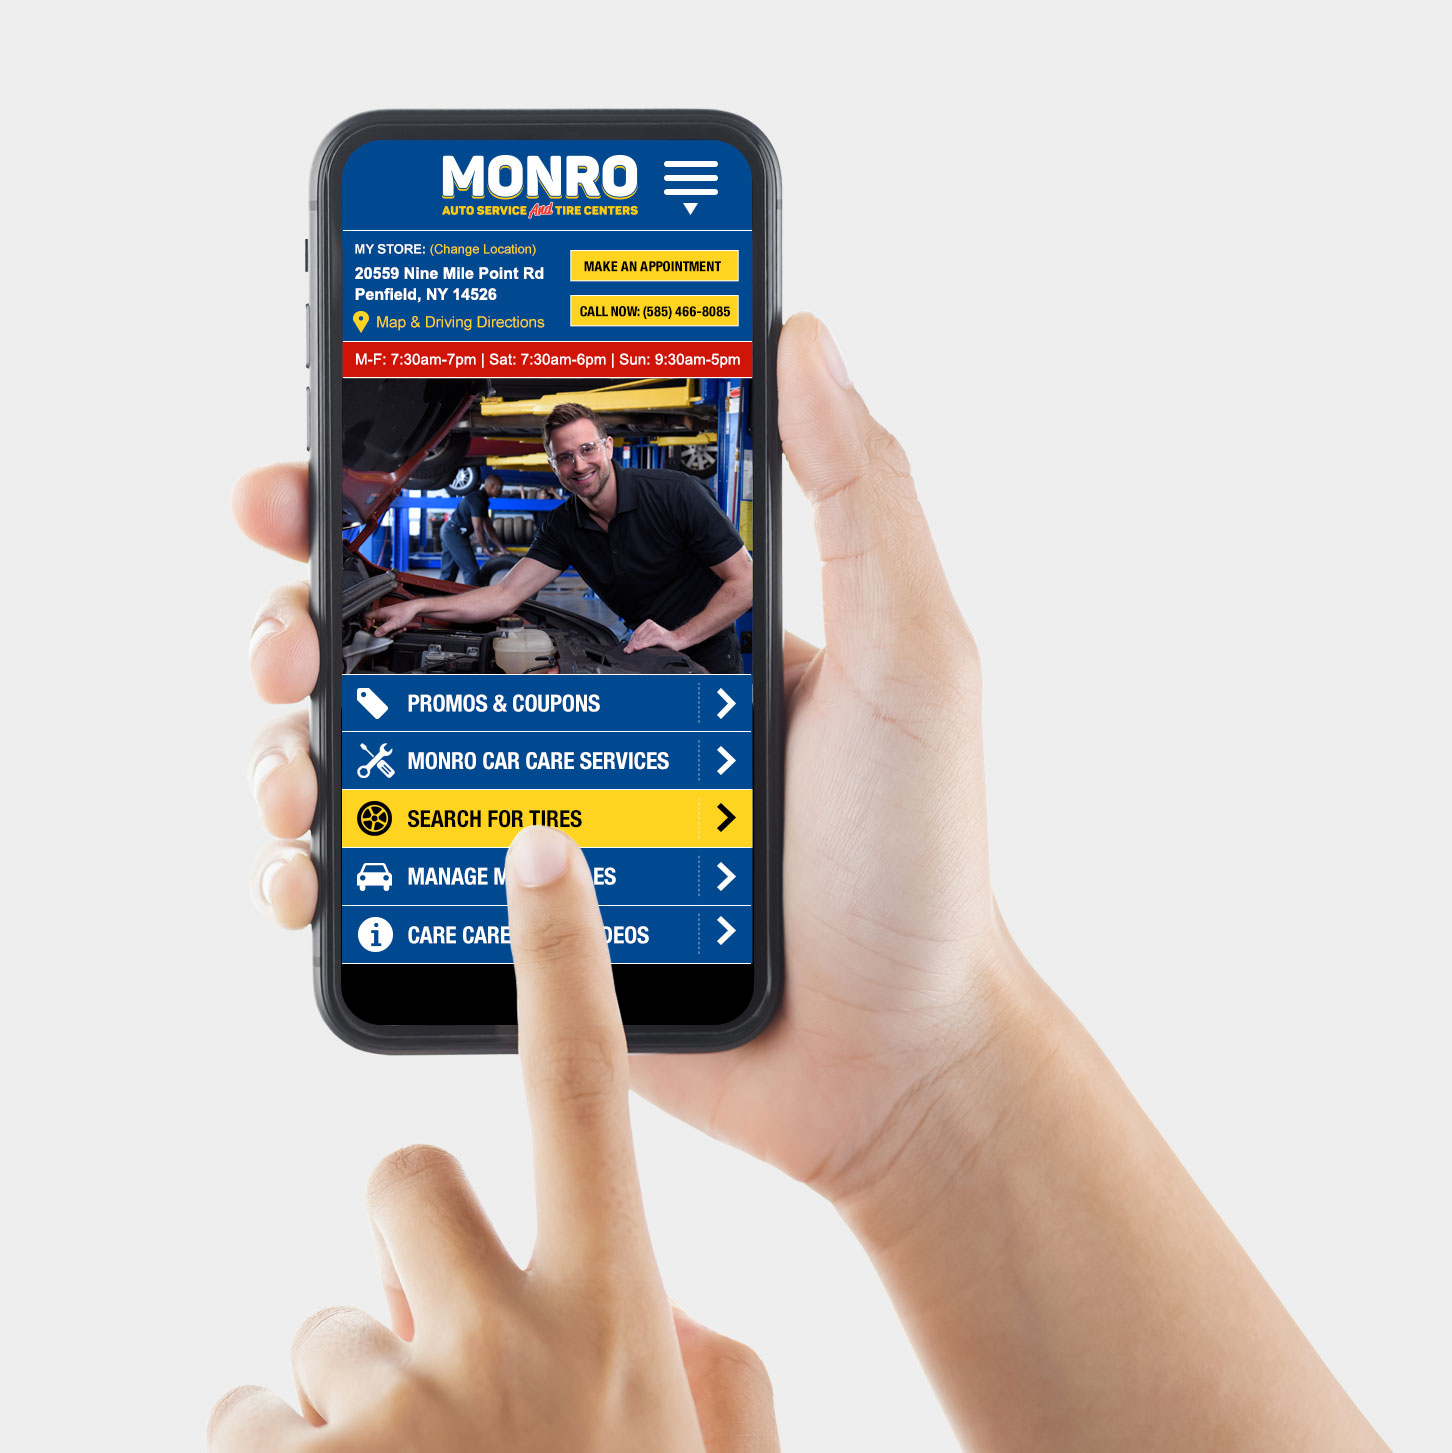 Photo of hands holding an iPhone with the Monro Auto Service mobile application displayed on screen.